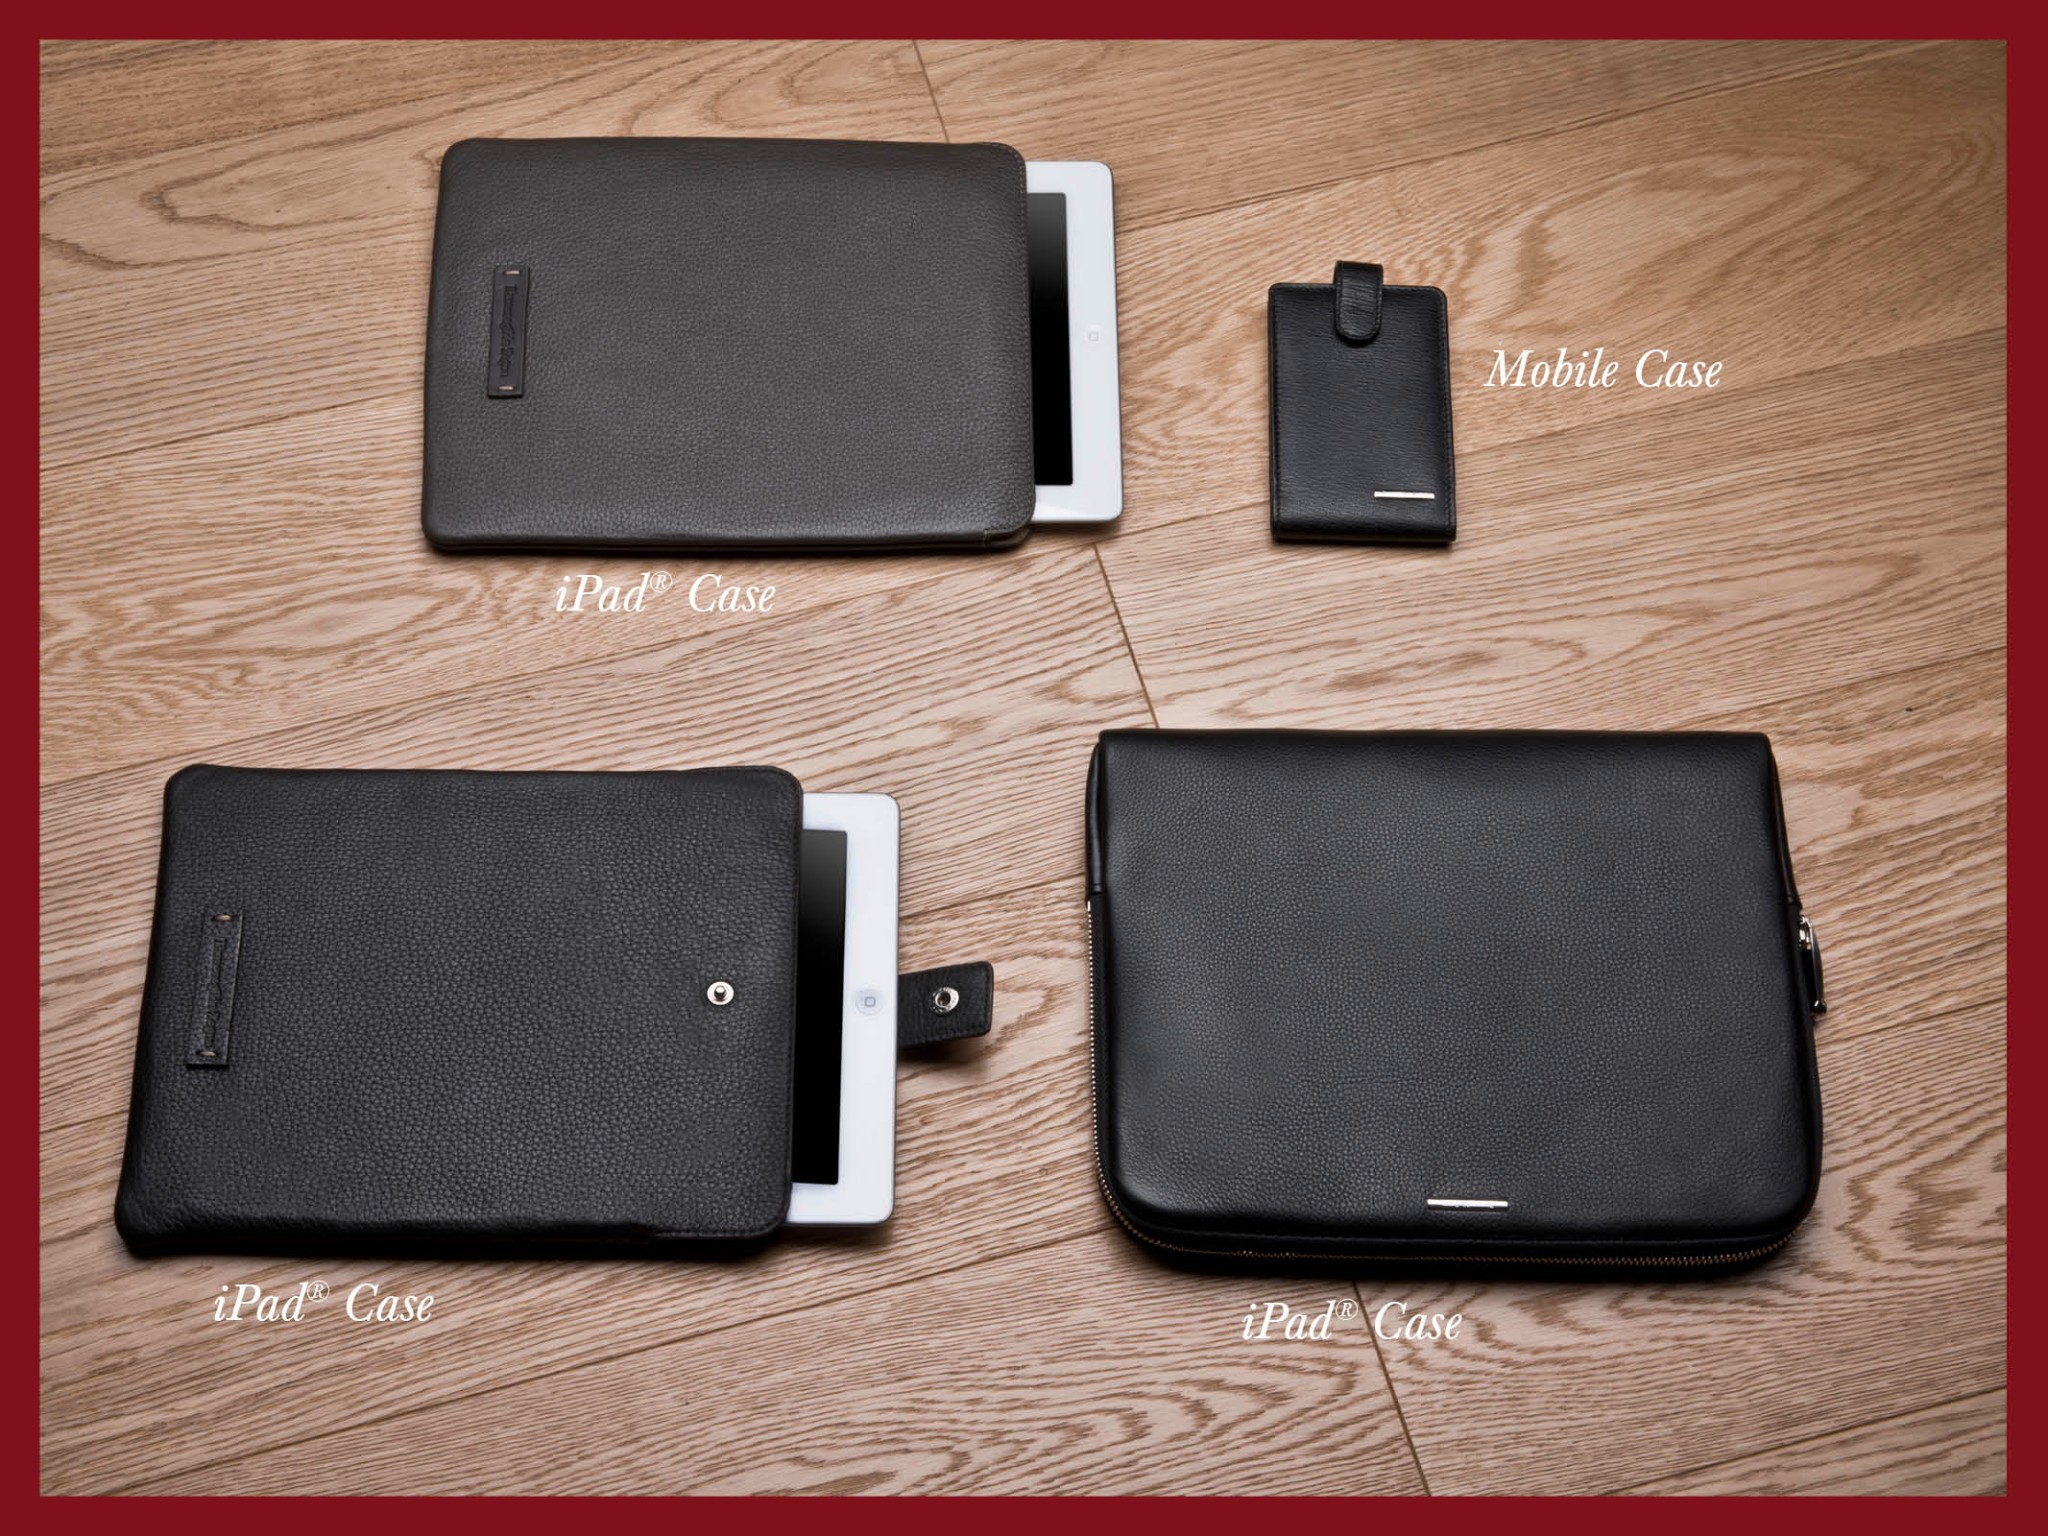 Photo: Ermenegildo Zegna - Holiday Season Selection - Digital cases in different leather types: which one do you prefer? Shop online at http://bit.ly/X47GwN